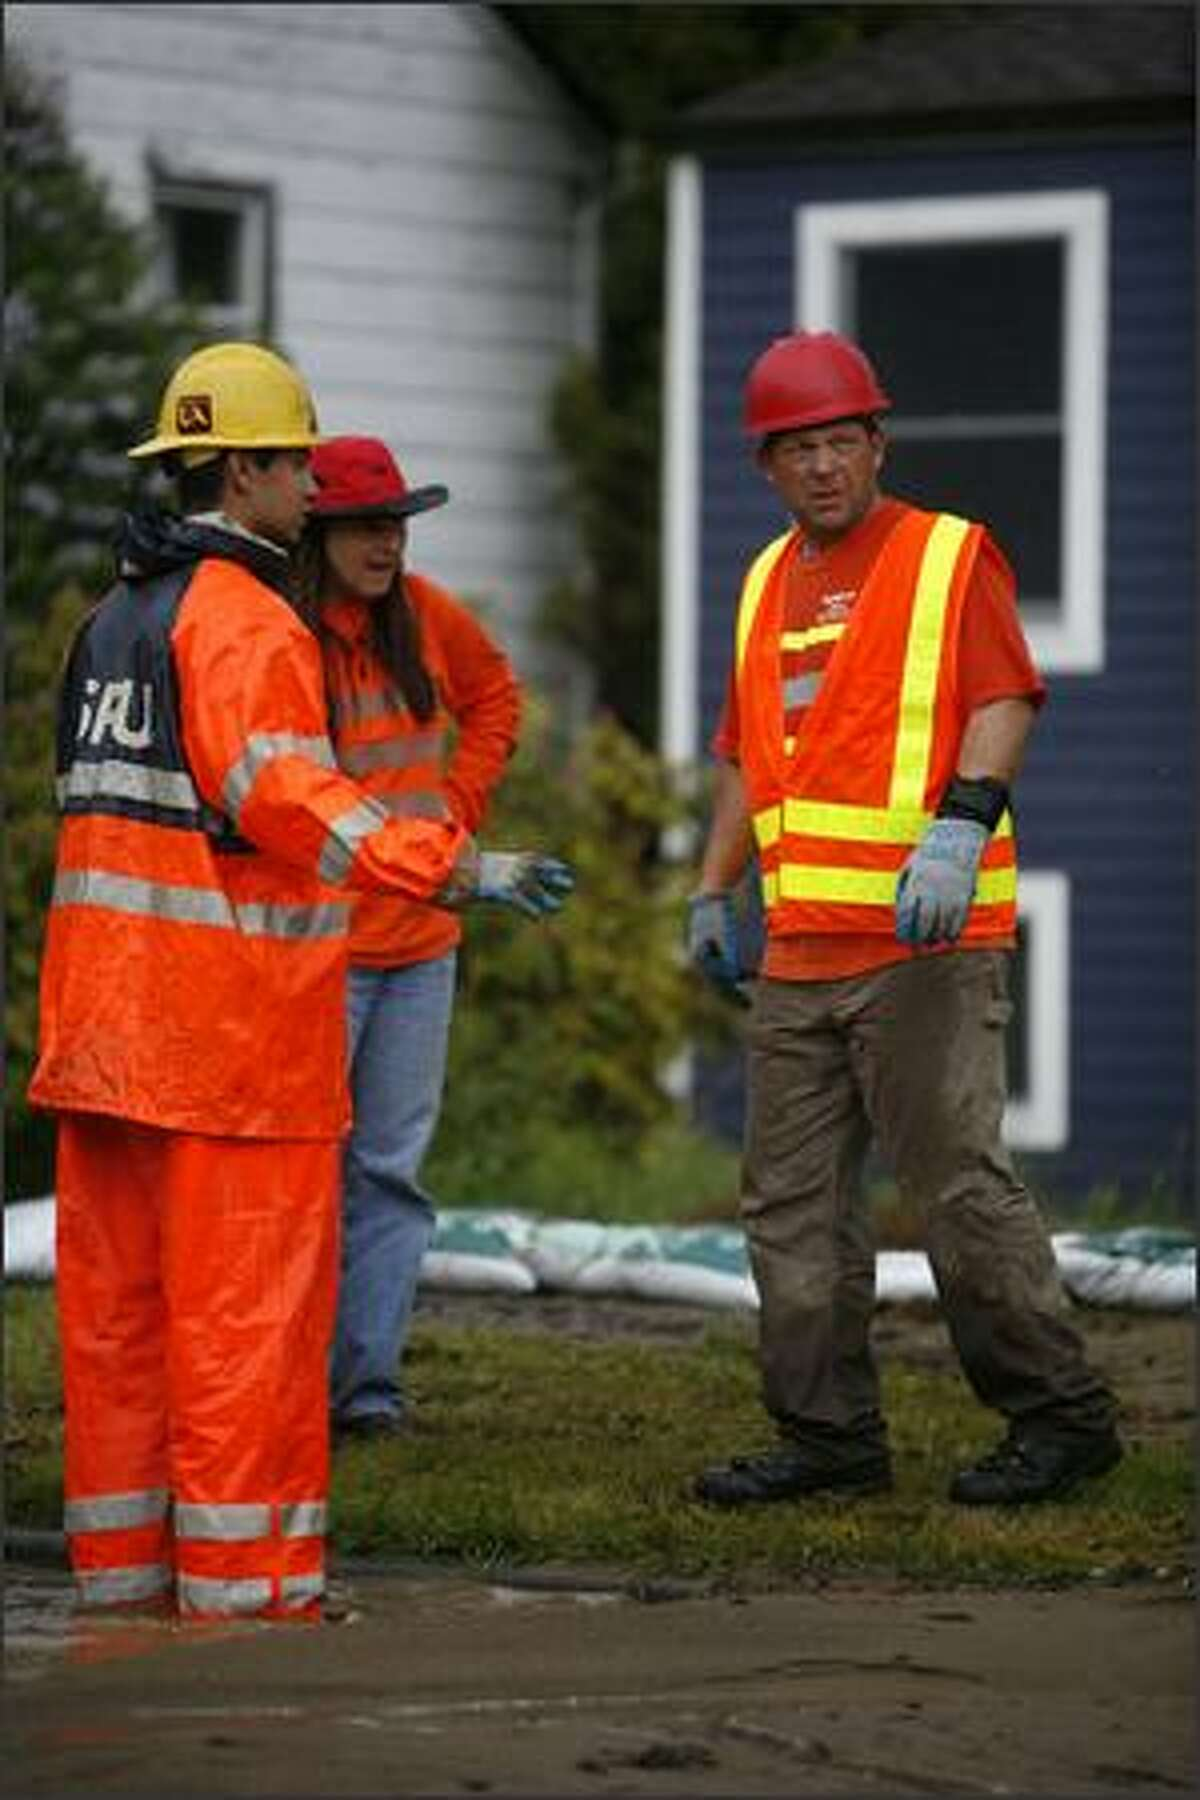 Seattle Public Utility workers survey the scene after a water main burst, flooding homes on Tuesday.